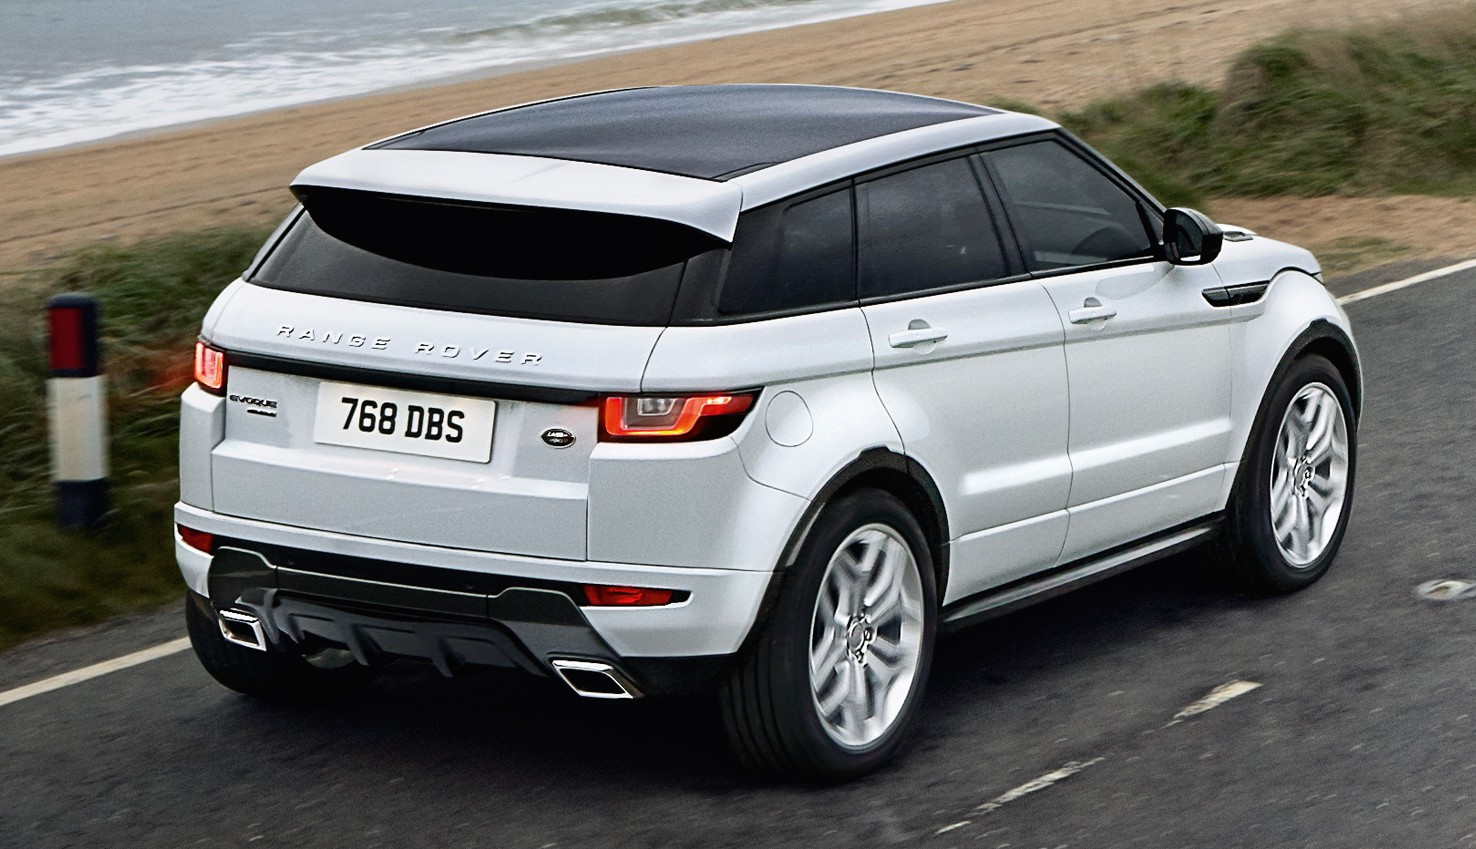 2016 Range Rover Evoque facelift gets subtle updates Paul ...